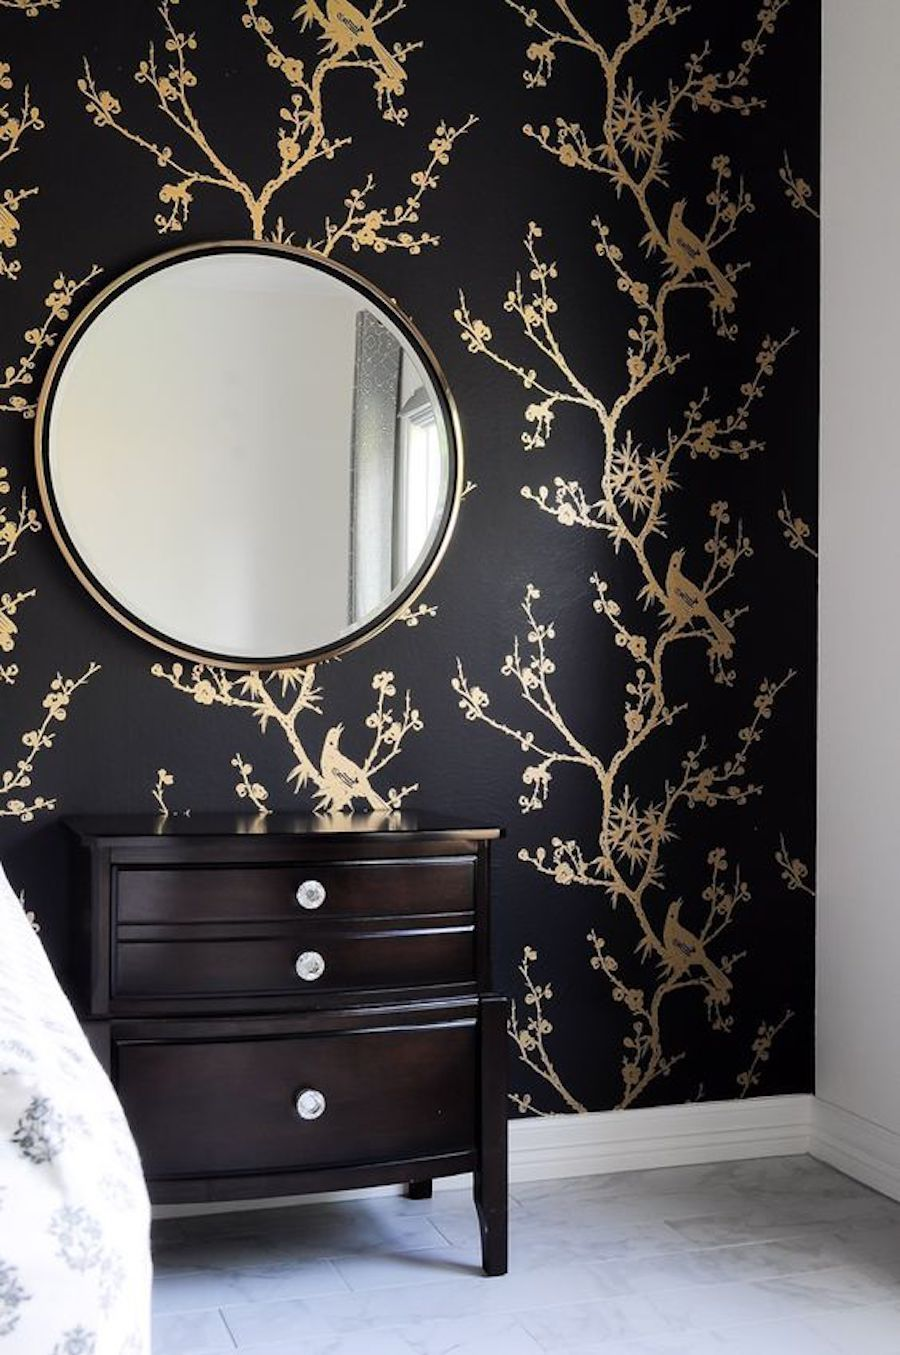 11 Seductive Black & Gold Bedrooms Ideas For The Modern Home